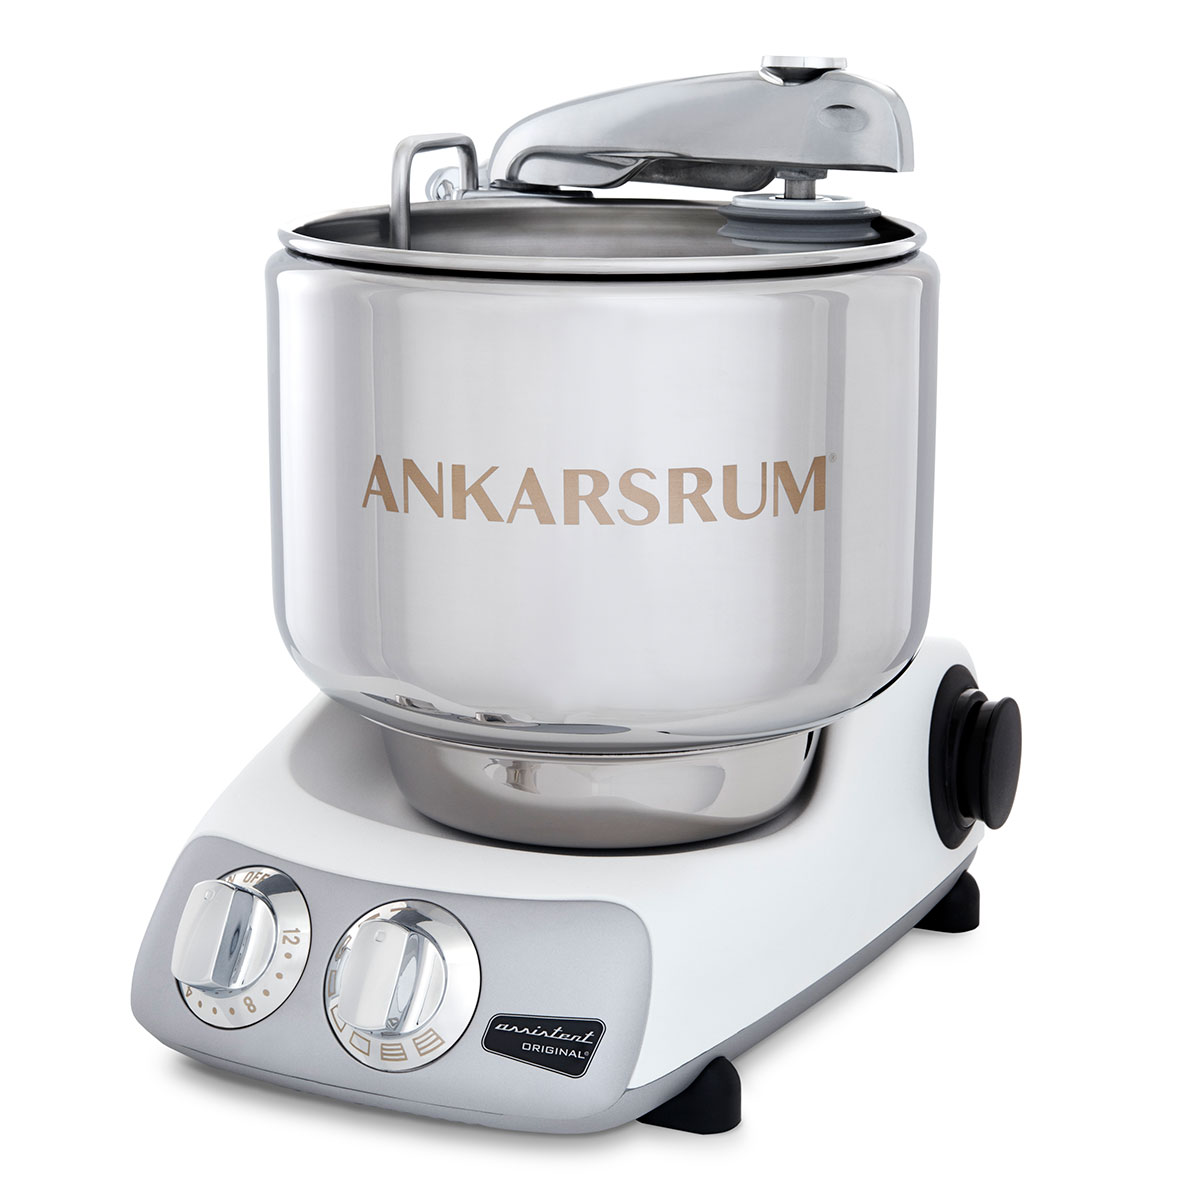 Image of   Ankarsrum køkkenmaskine - Assistent original 6230MW - Mineral White